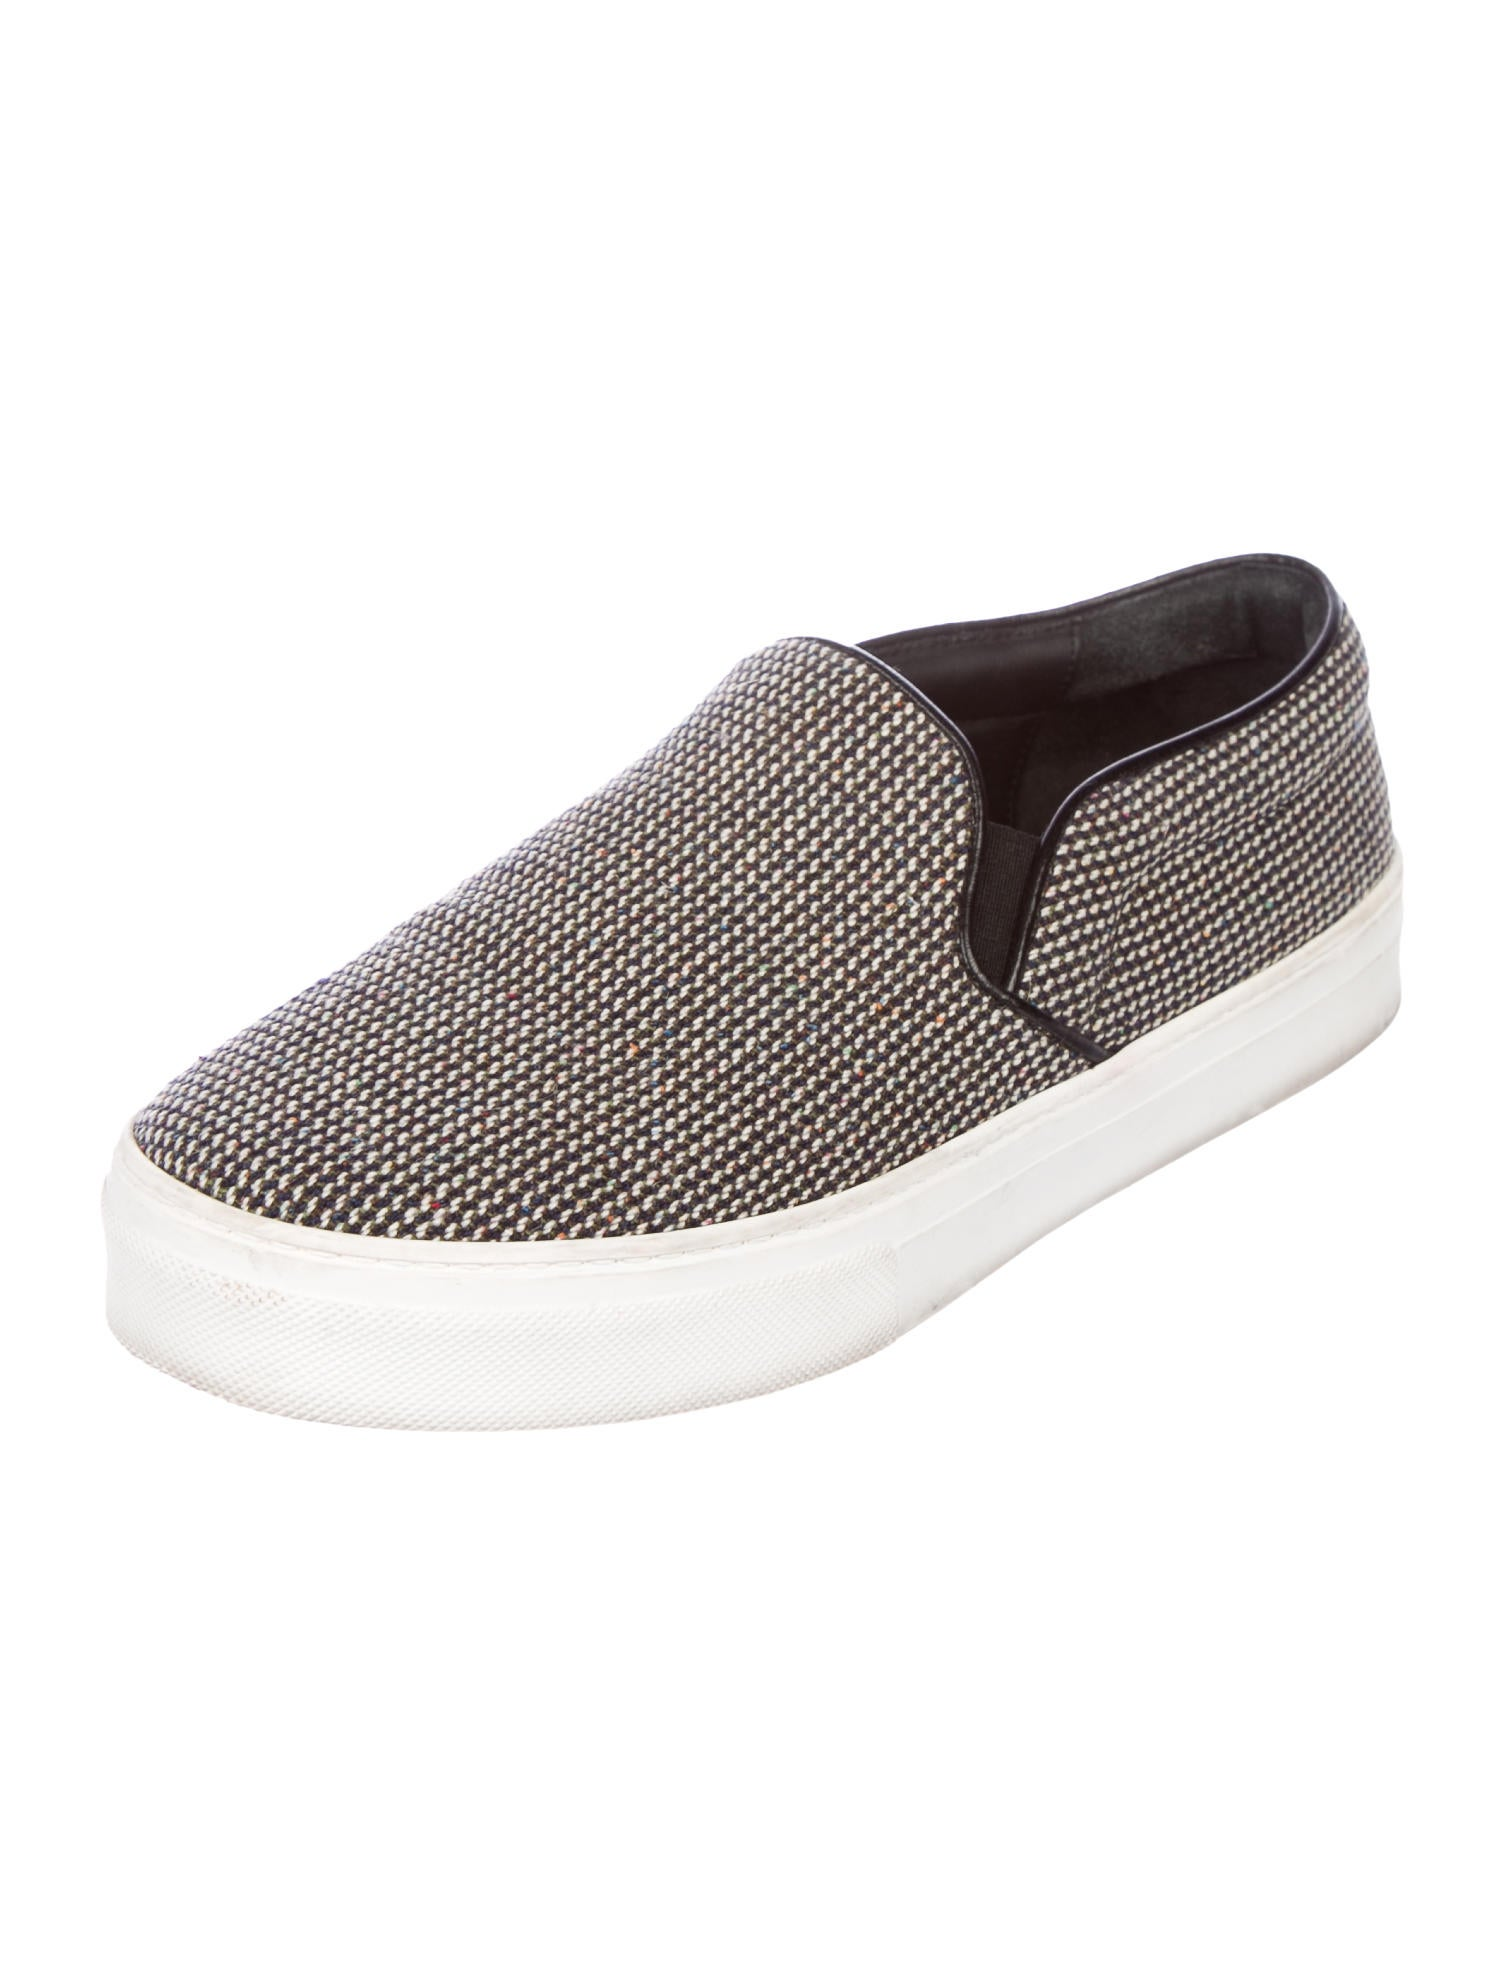 authentic sale online Céline Tweed Slip-On Sneakers official site for sale geniue stockist online cheap wide range of clearance 2014 new lMvCfG